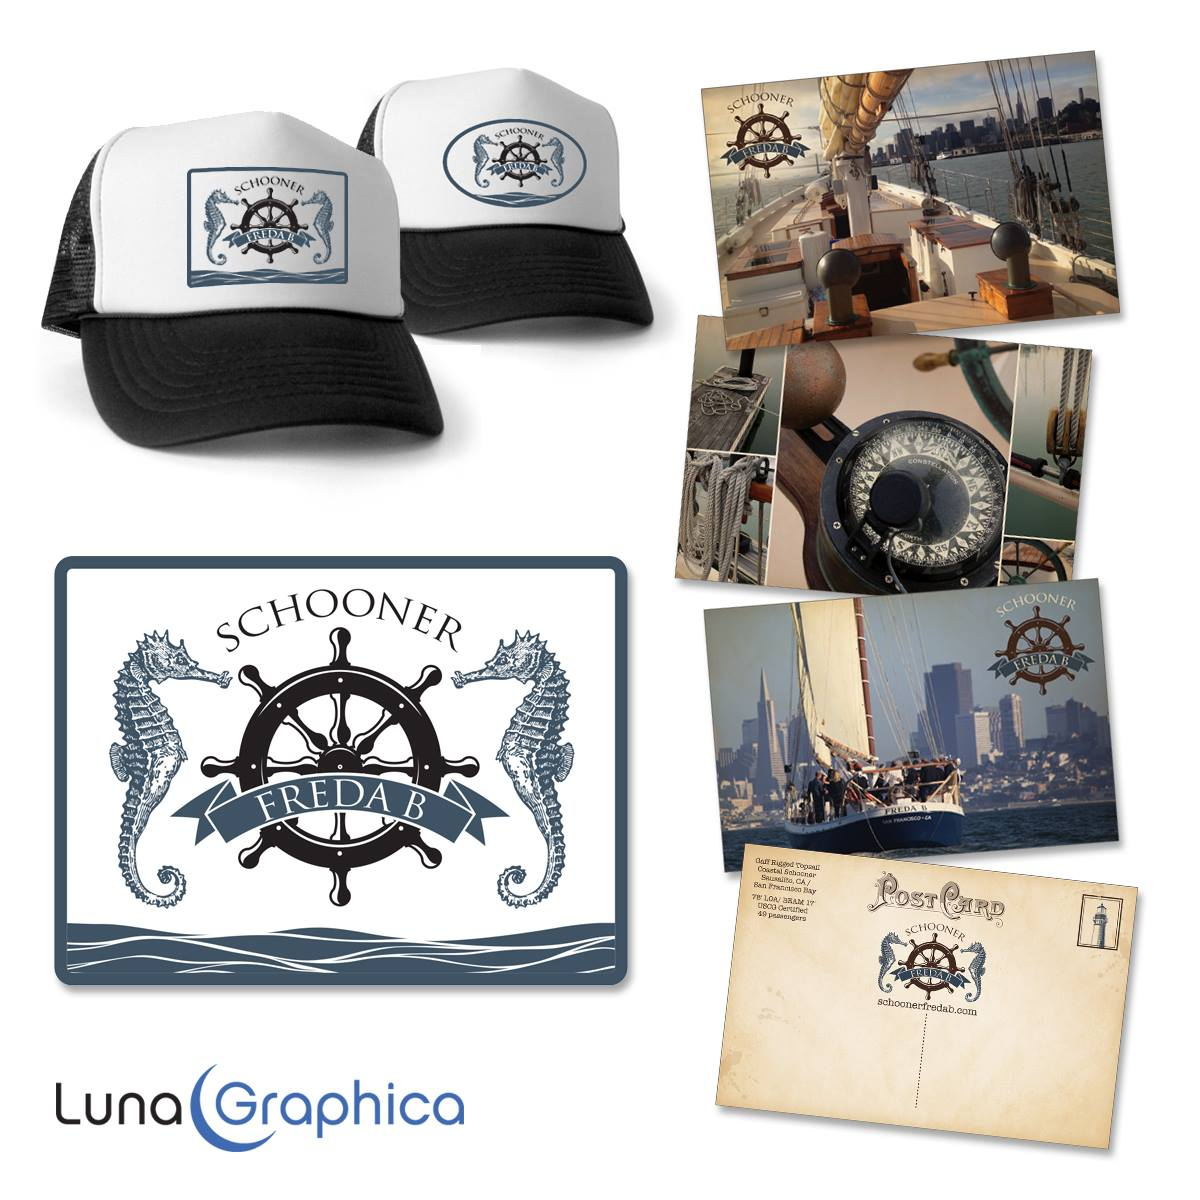 Yacht Charter Promotional Items